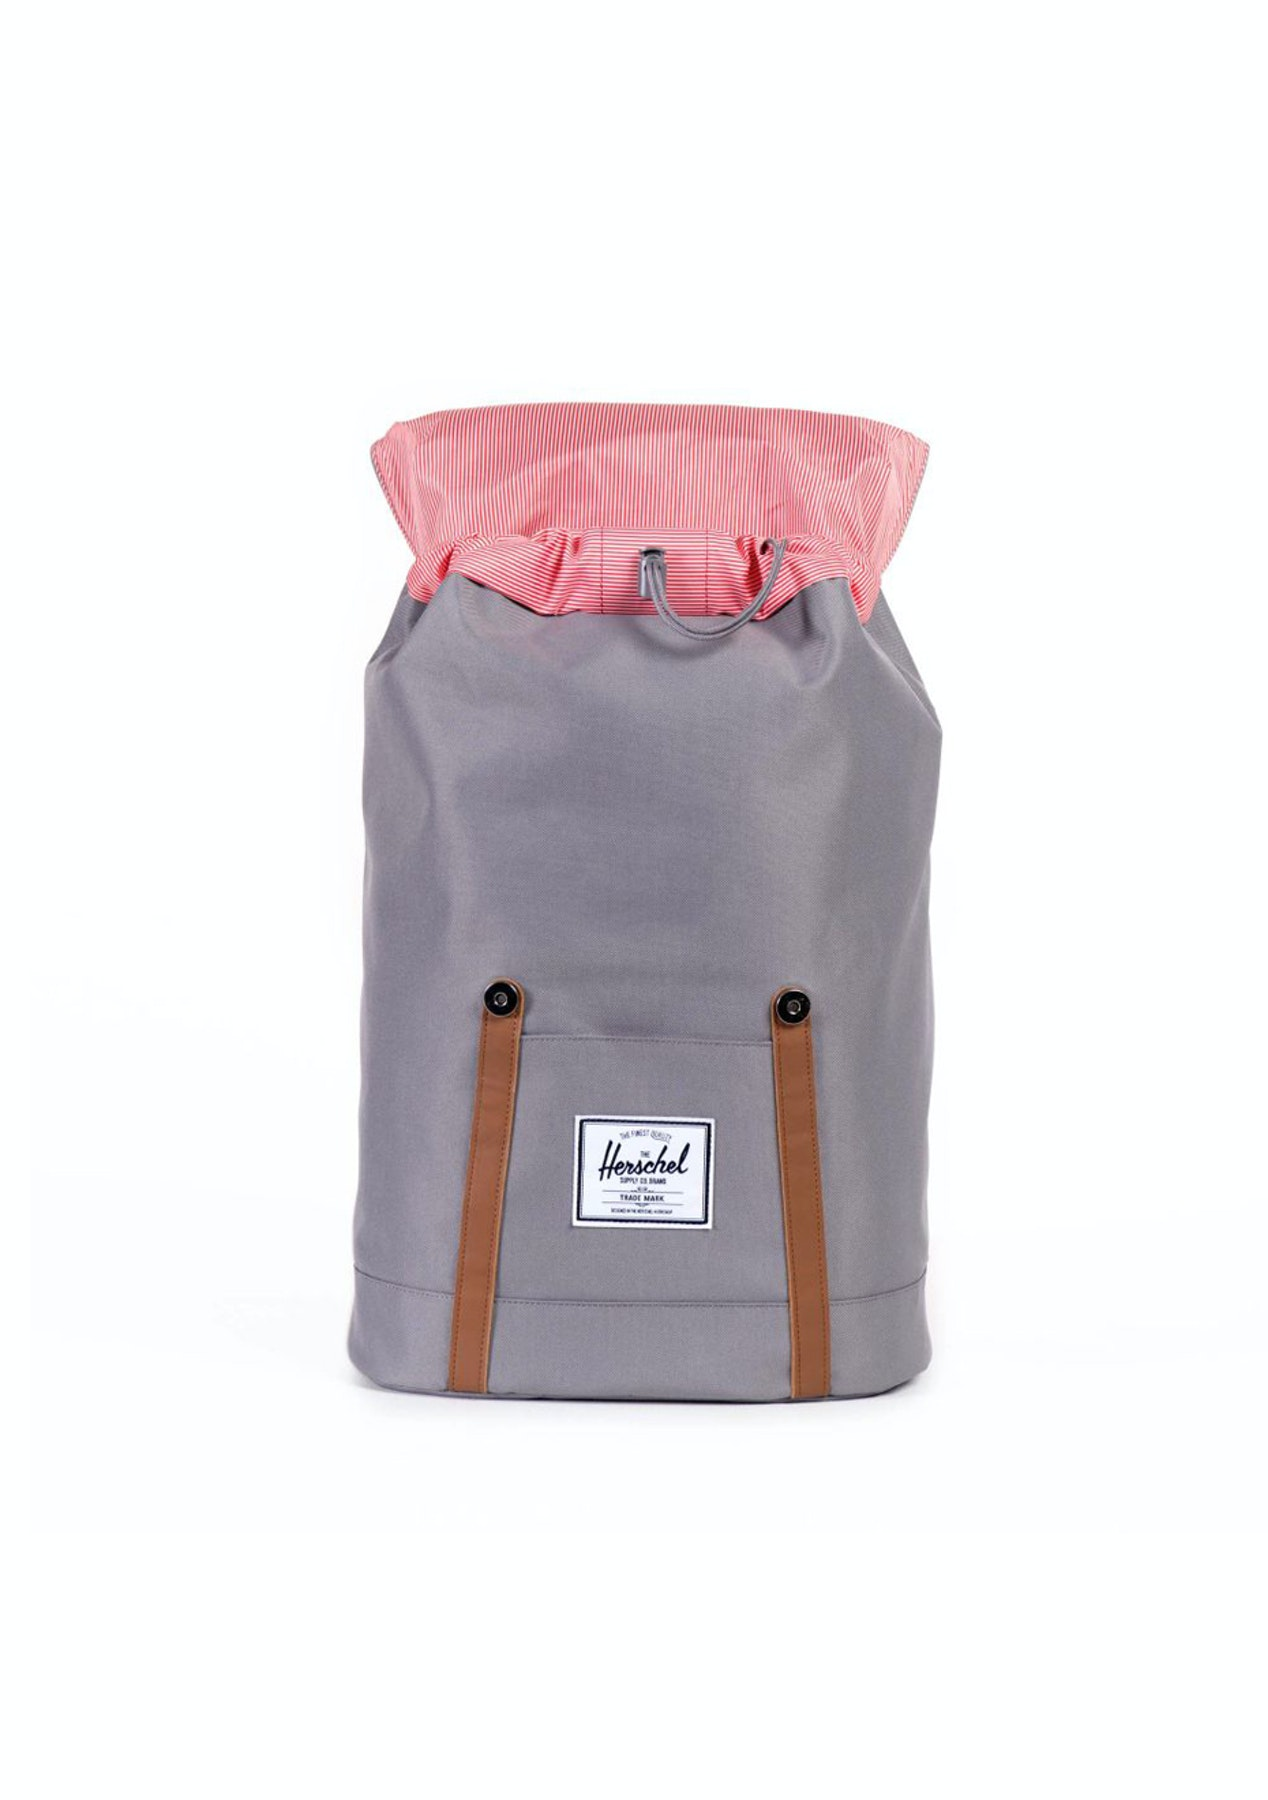 Herschel - Retreat Backpack - Grey Tan Synthetic Leather - Boxing Day Mens  Clearance - Onceit f08f3fa764a32